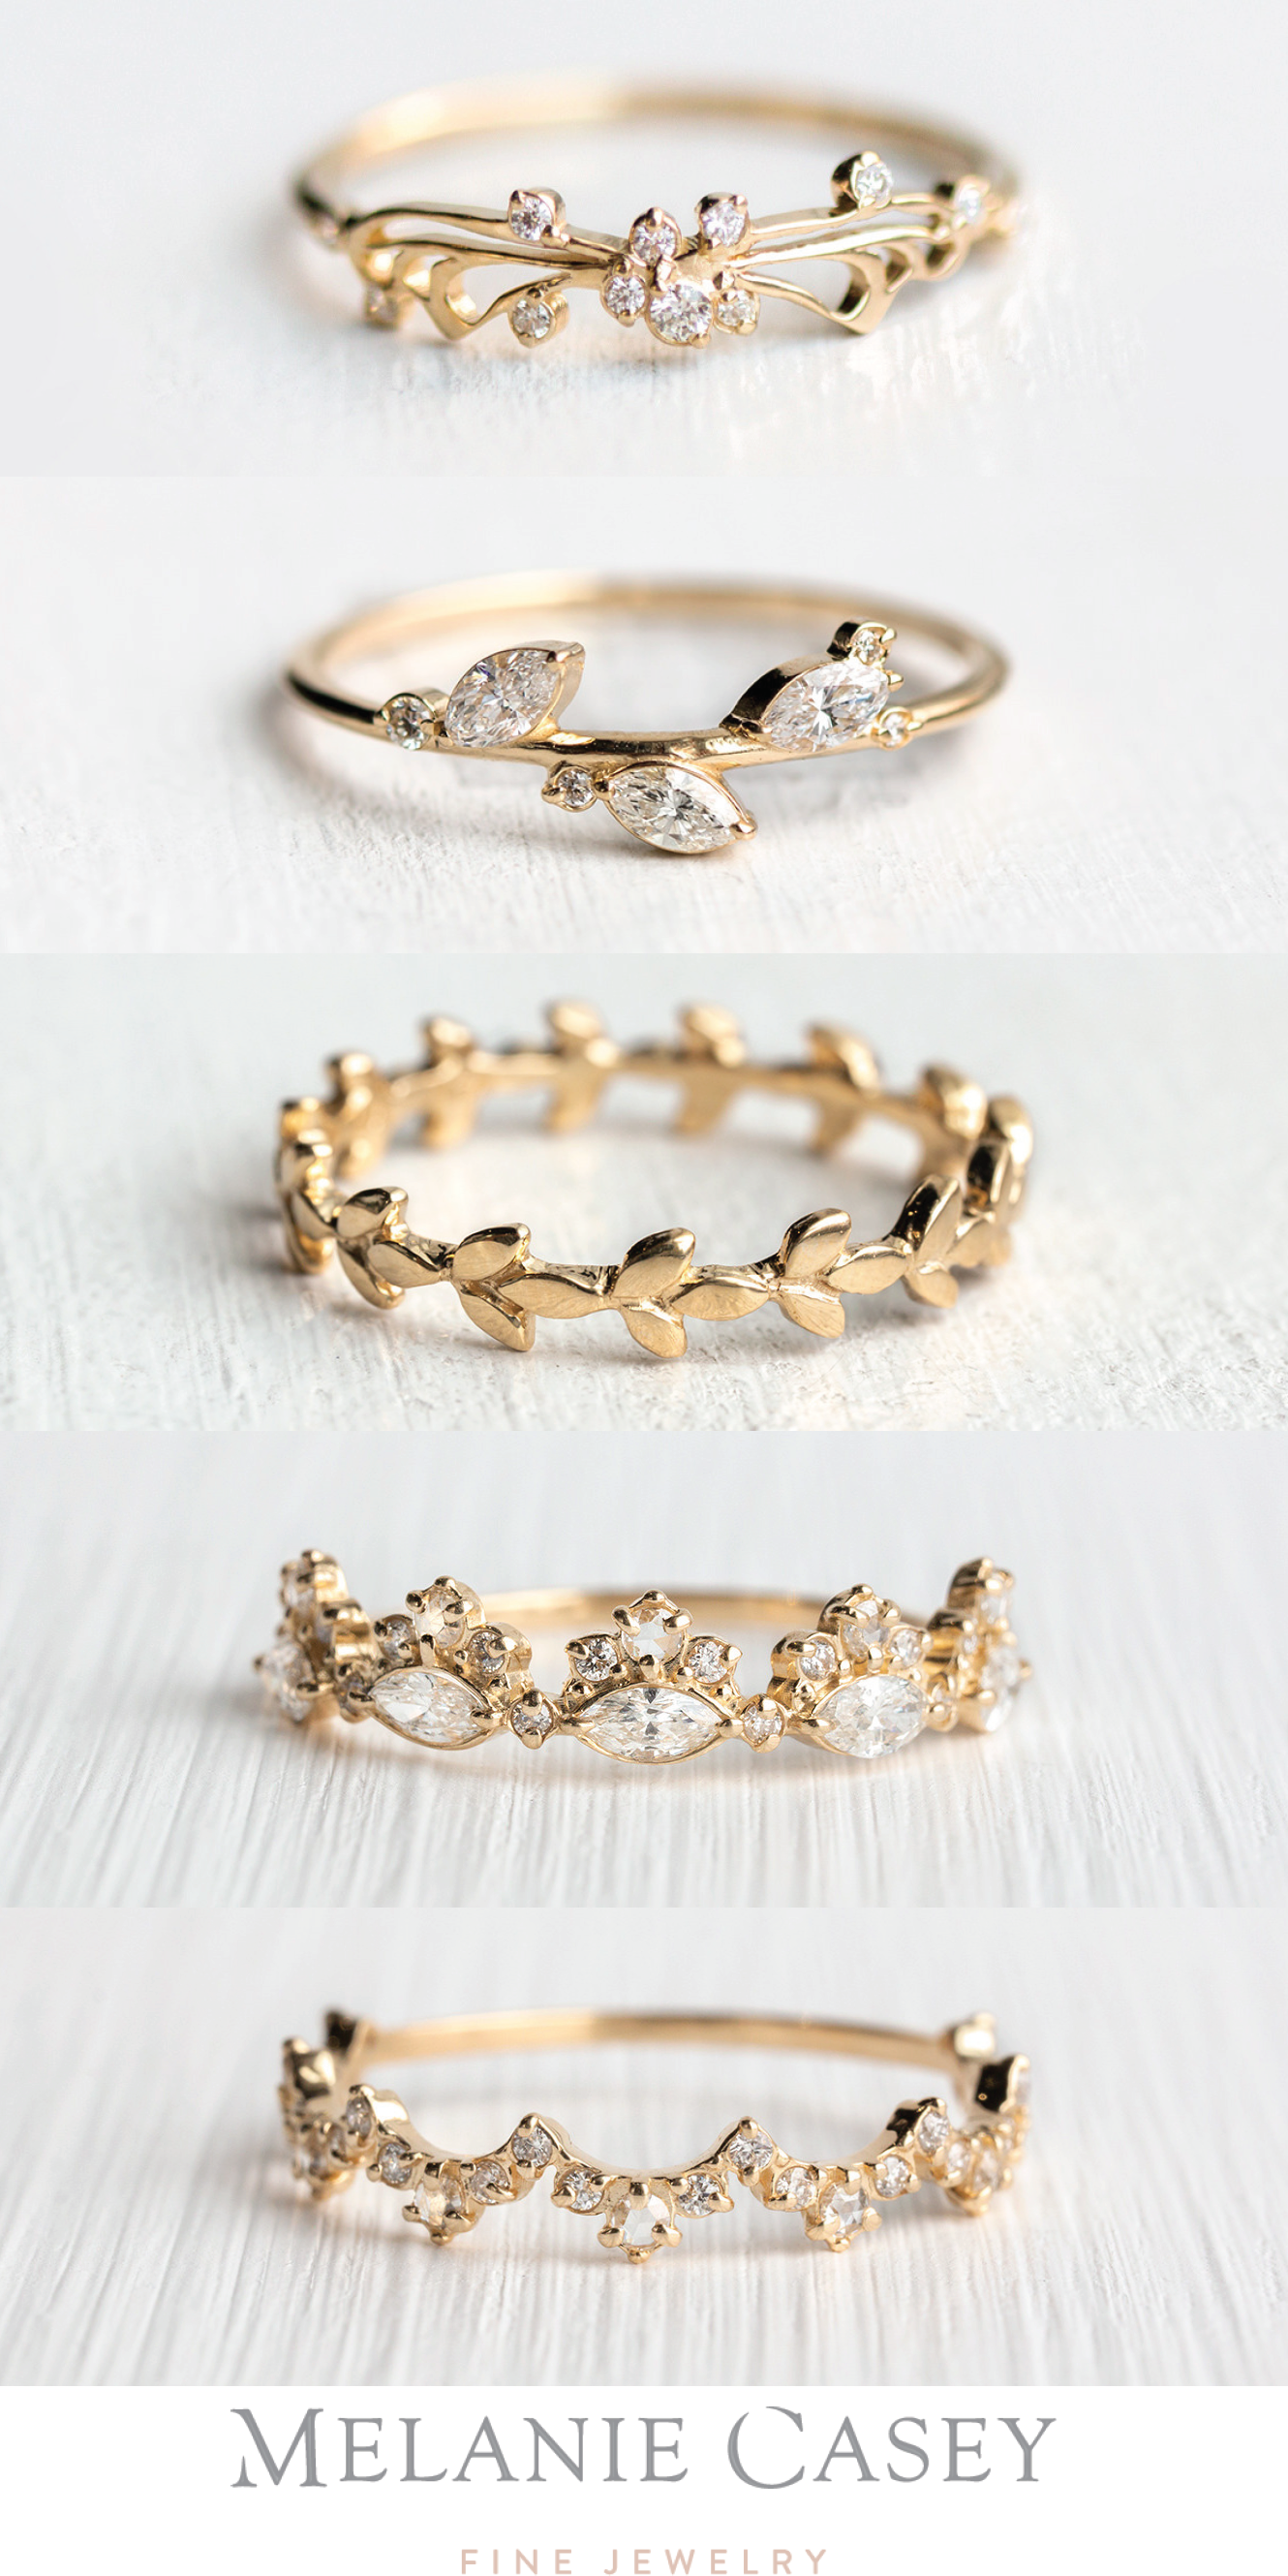 It is a graphic of Looking for a different, more intricate wedding band? Our wedding